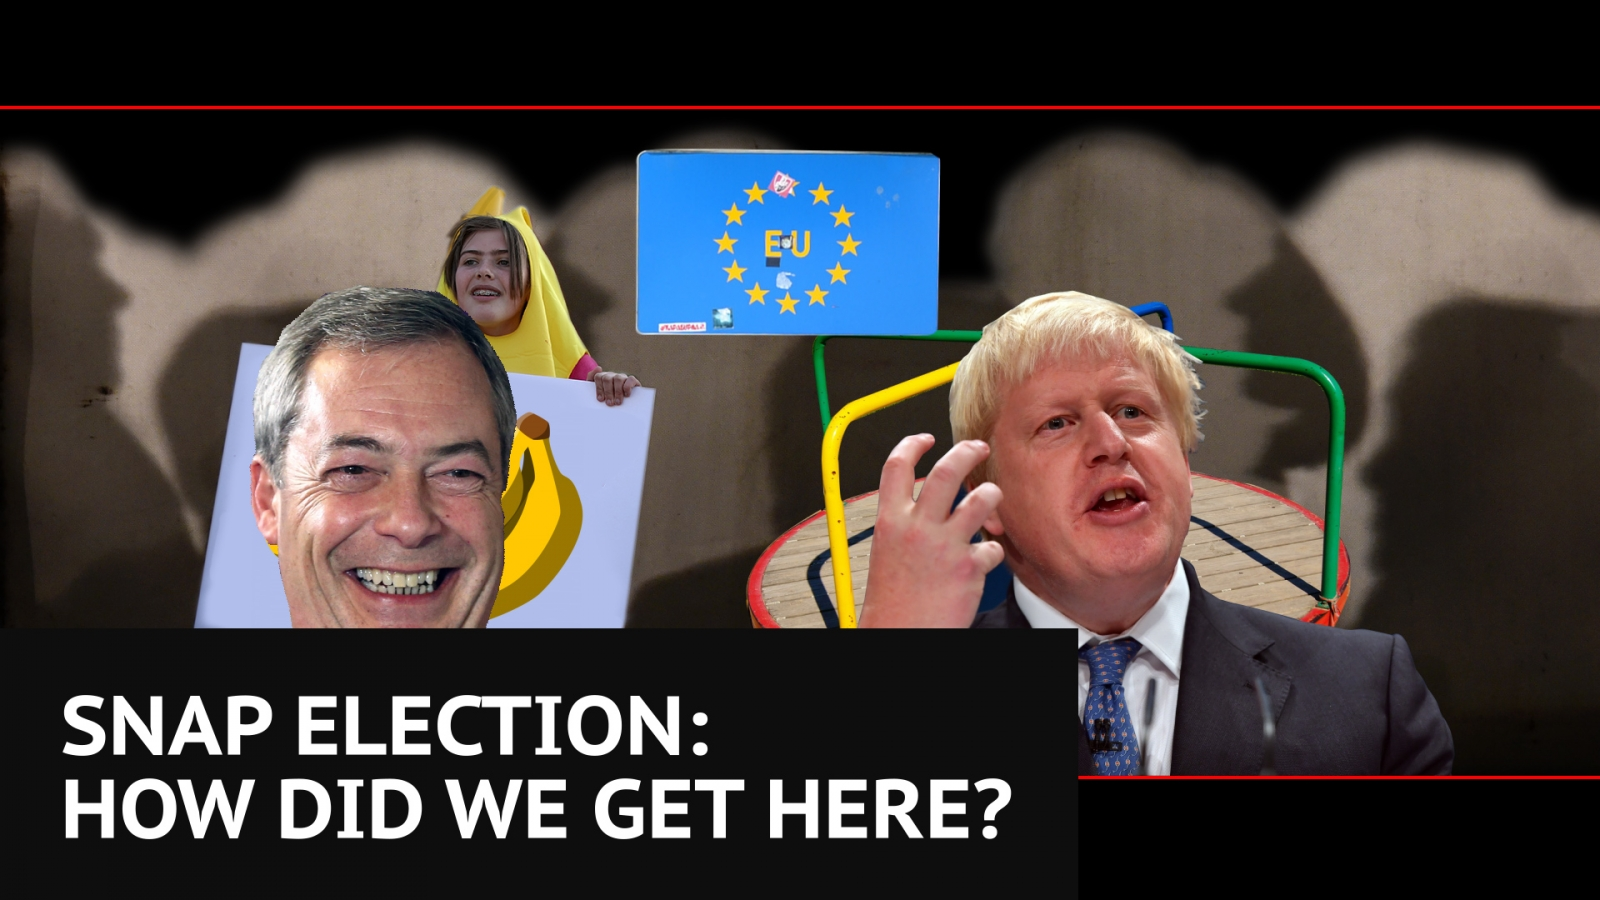 Snap election: How did we get here?